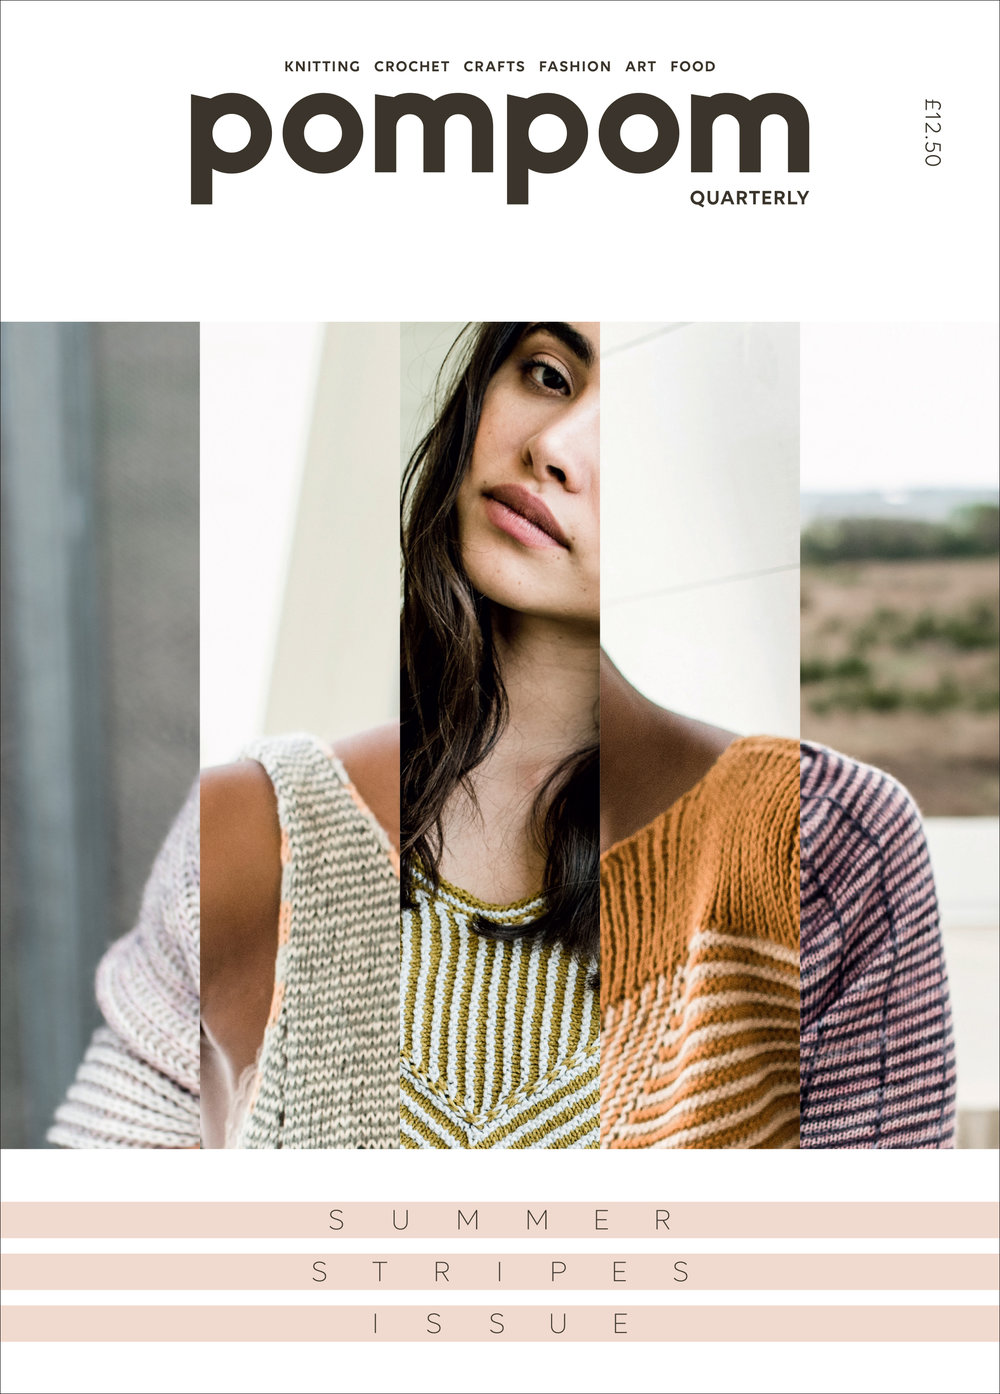 PP_FrontCover_25_AW.jpg